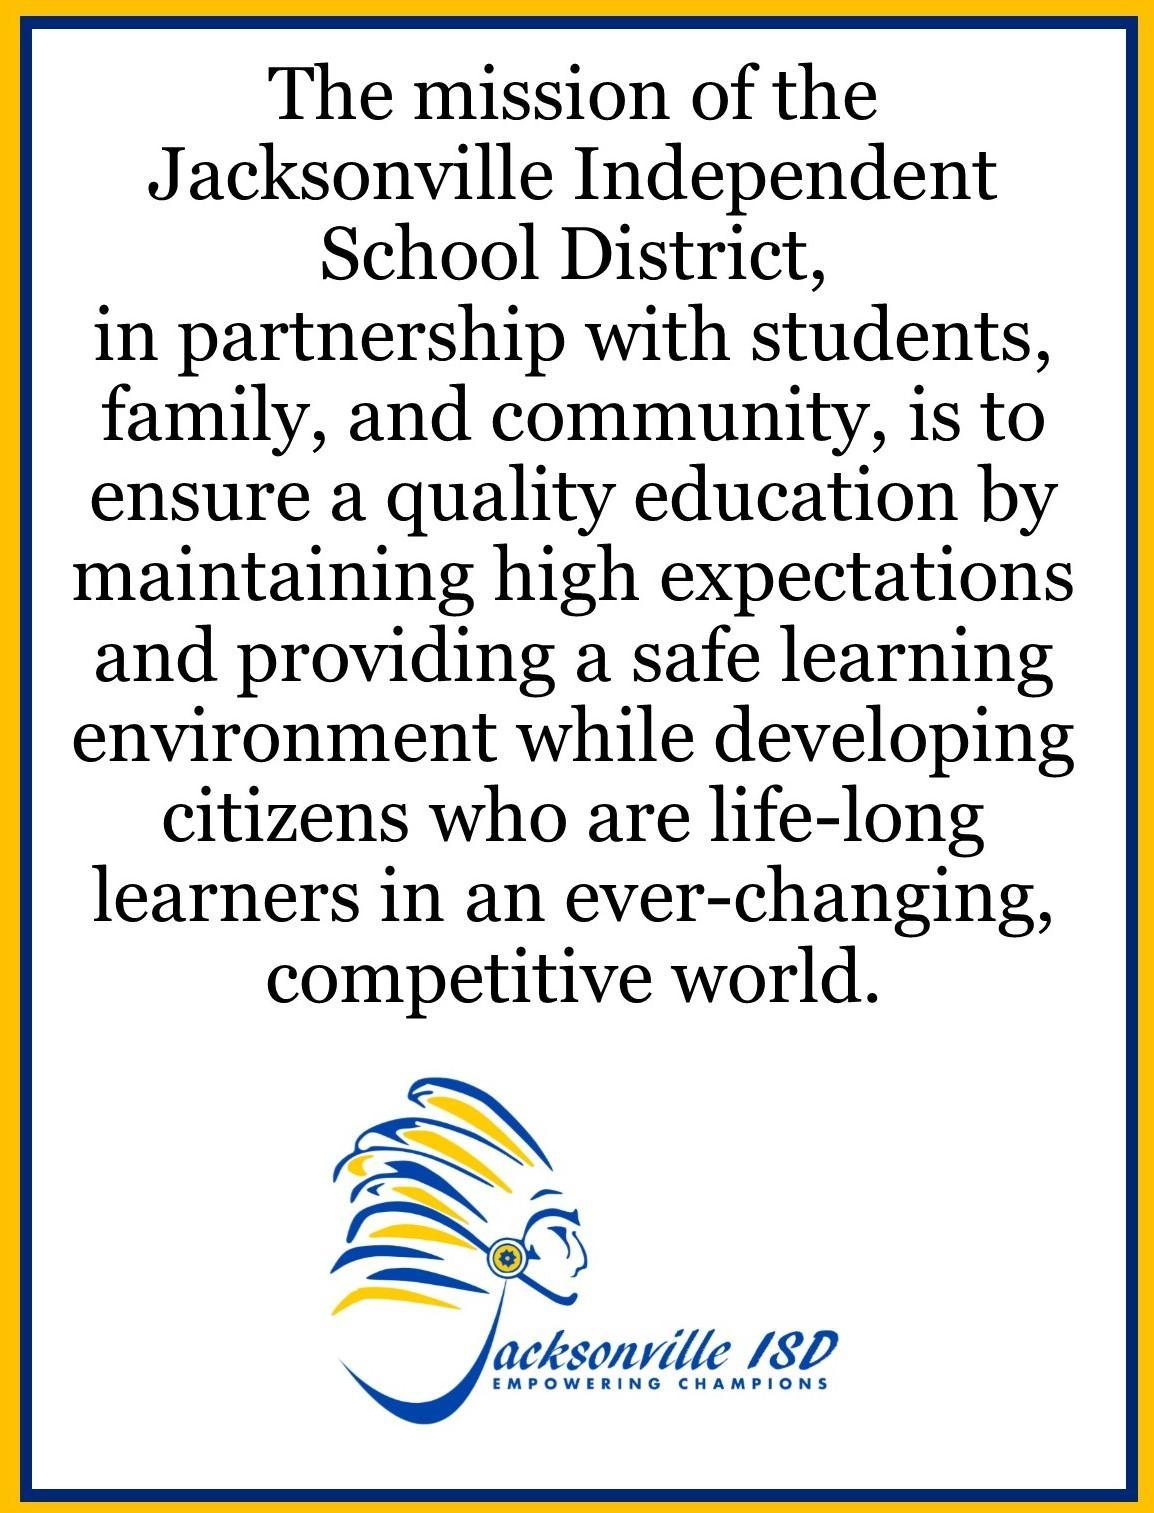 mission statement for jisd